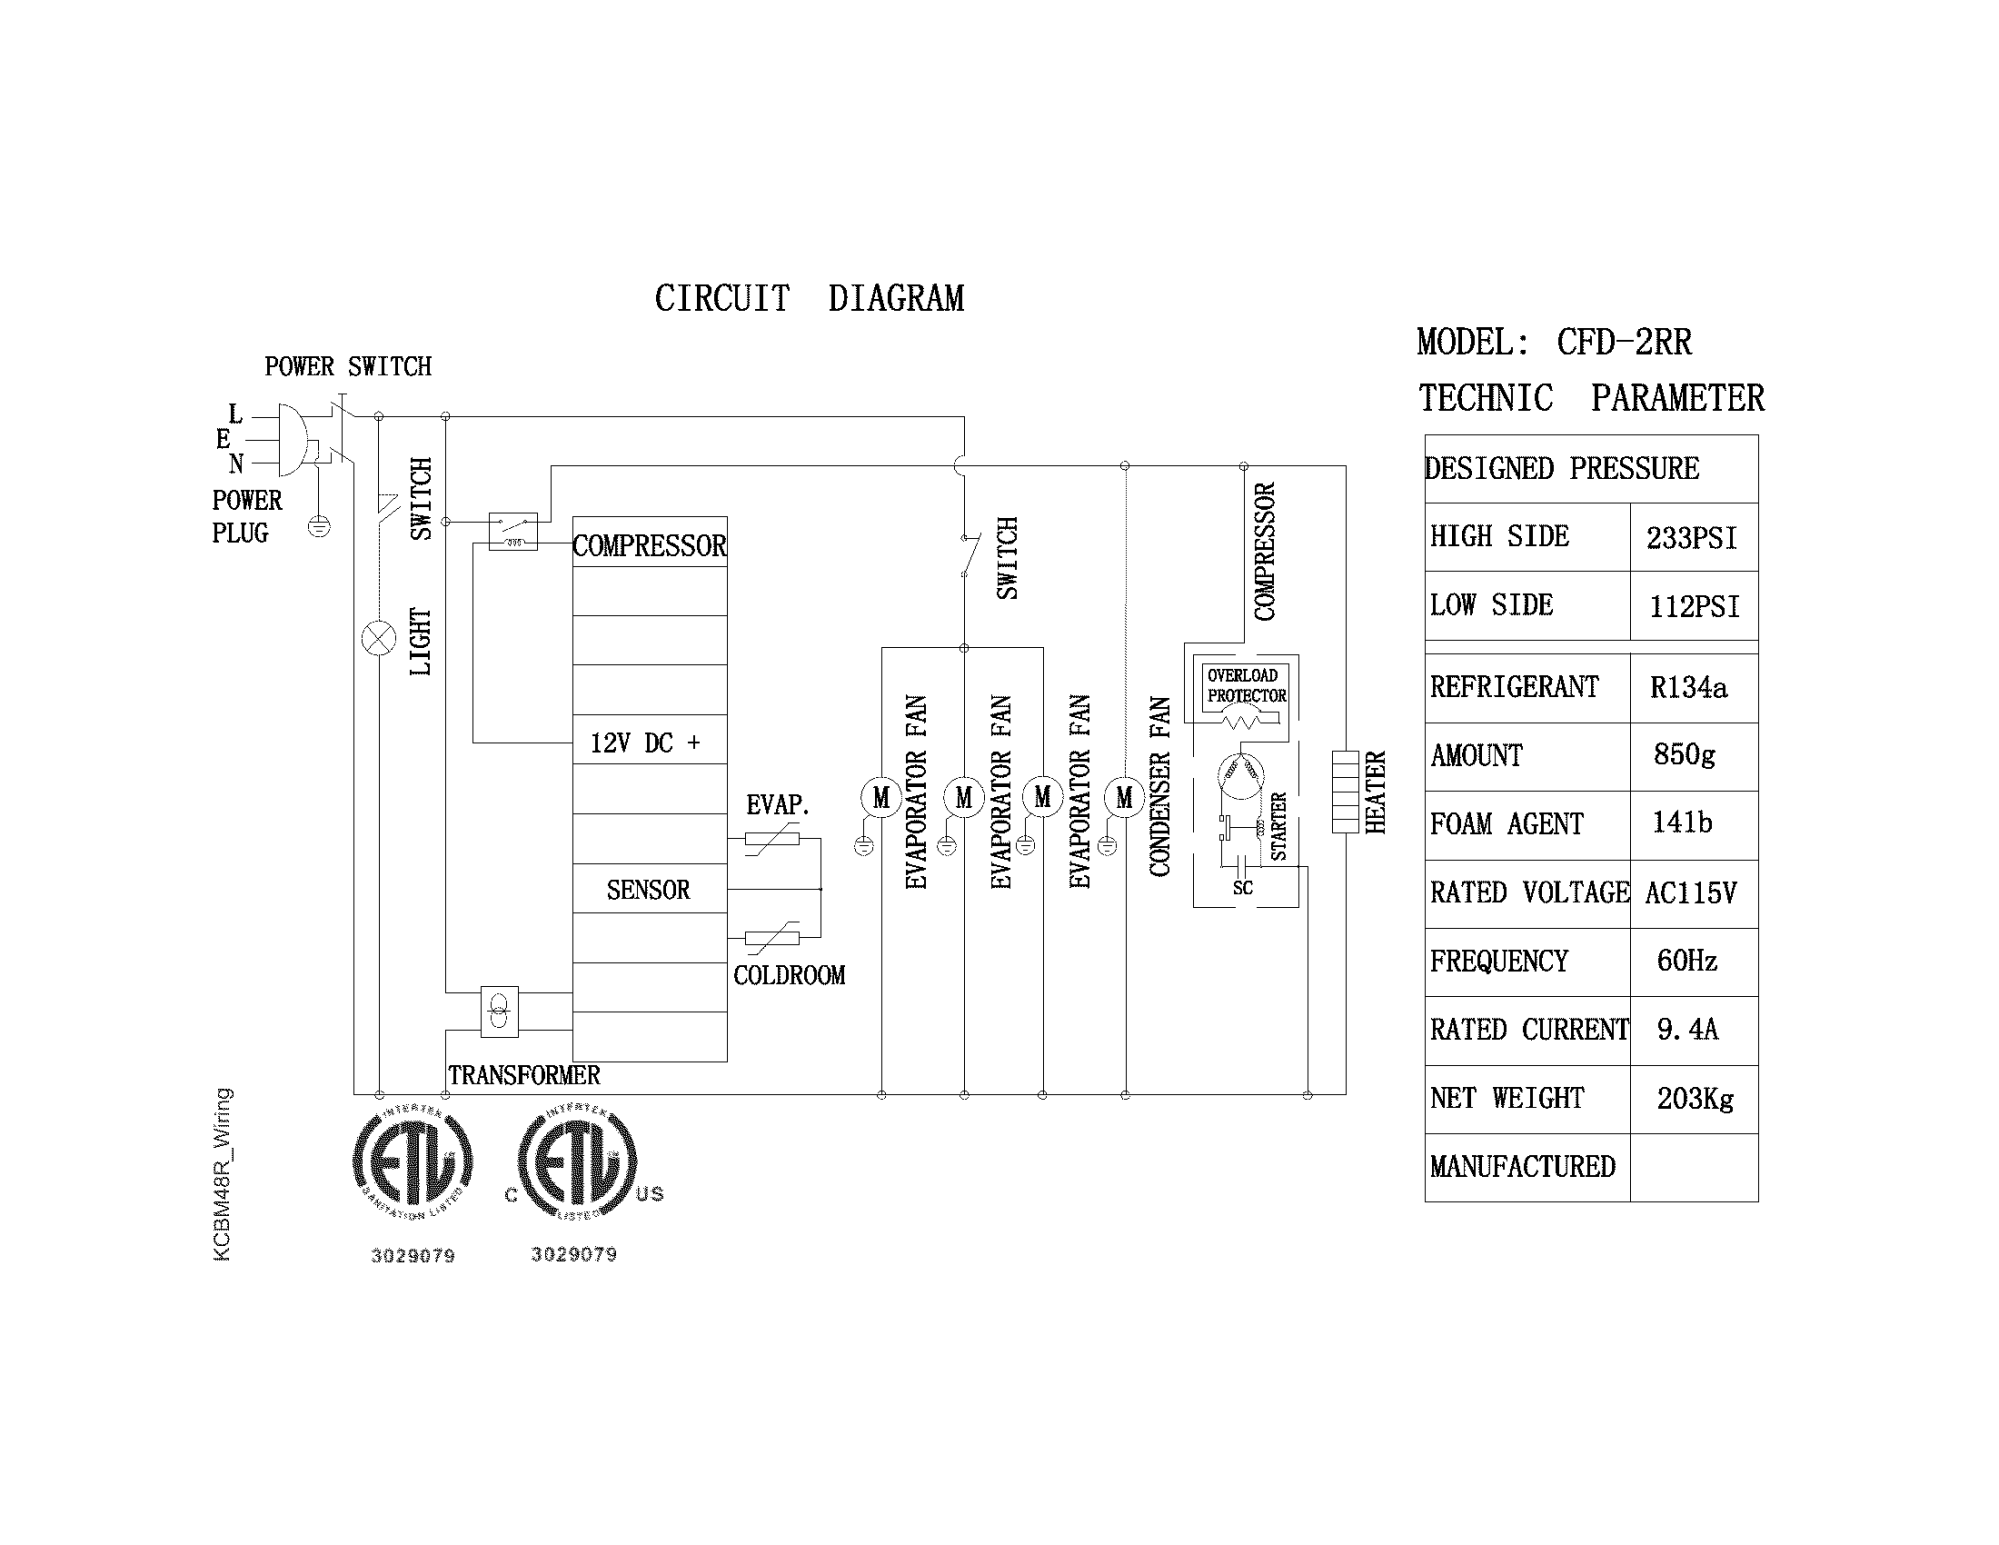 hight resolution of looking for kelvinator model kcbm48r refrigerator repair kelvinator refrigerator wiring diagram